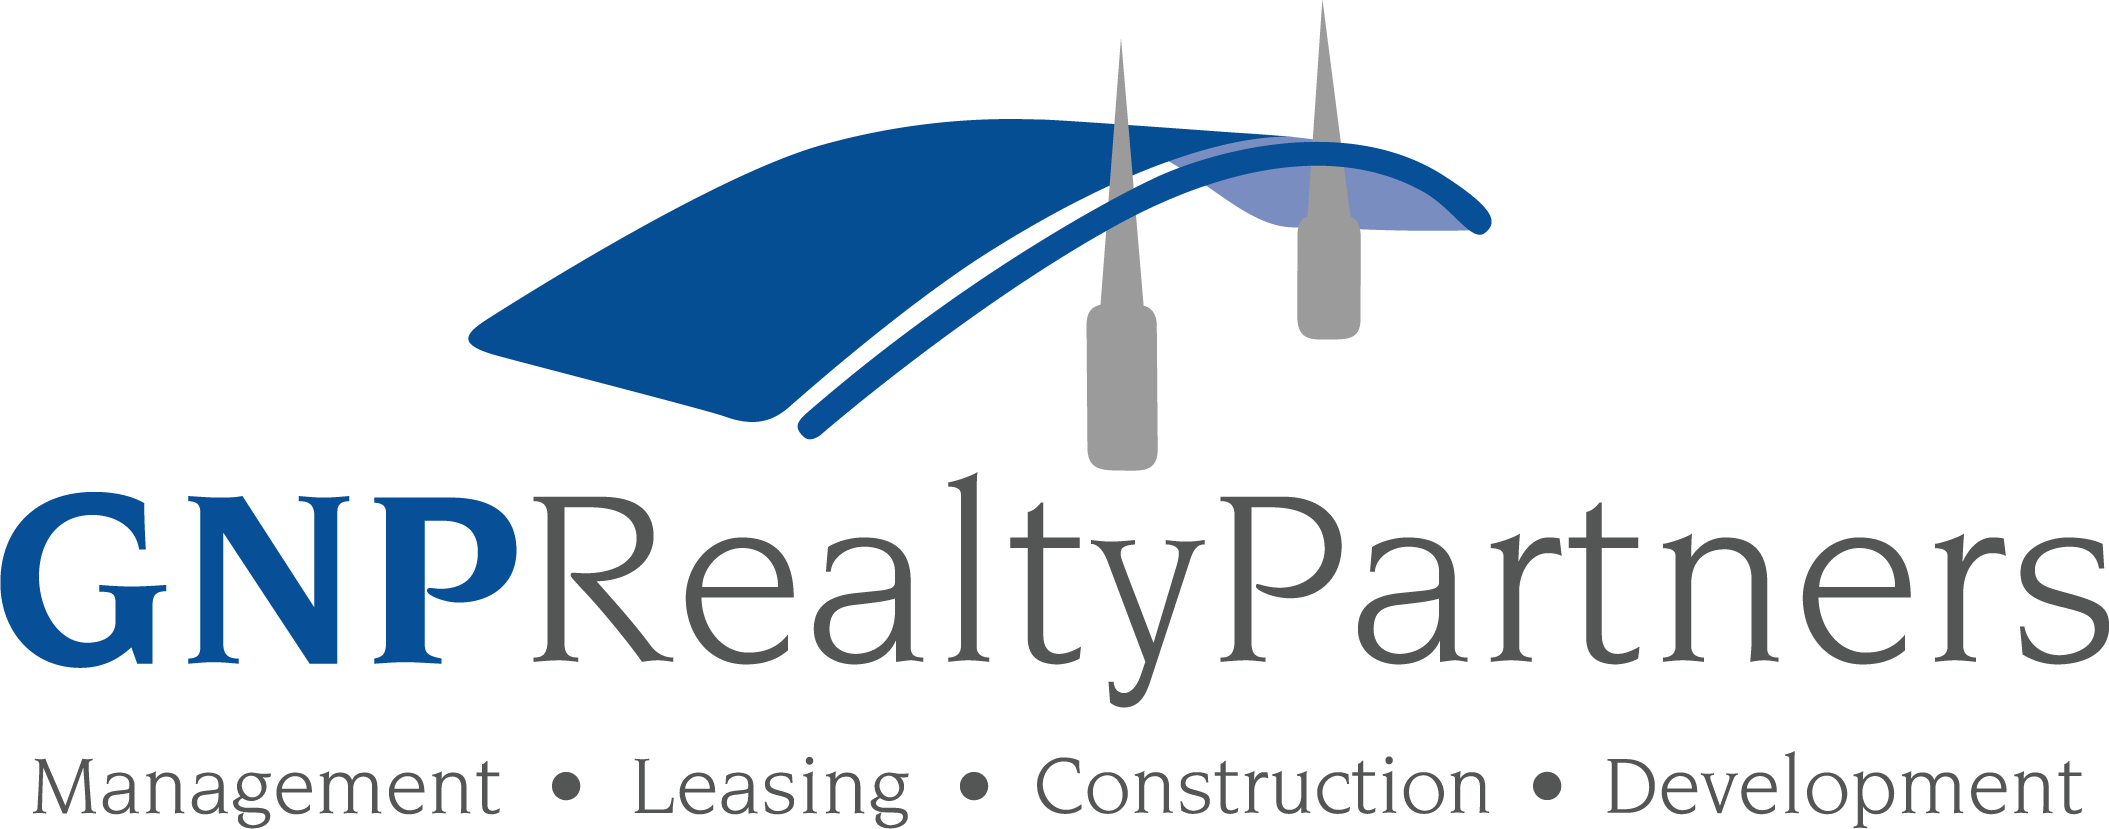 GNP Realty_MLCD_4C.png